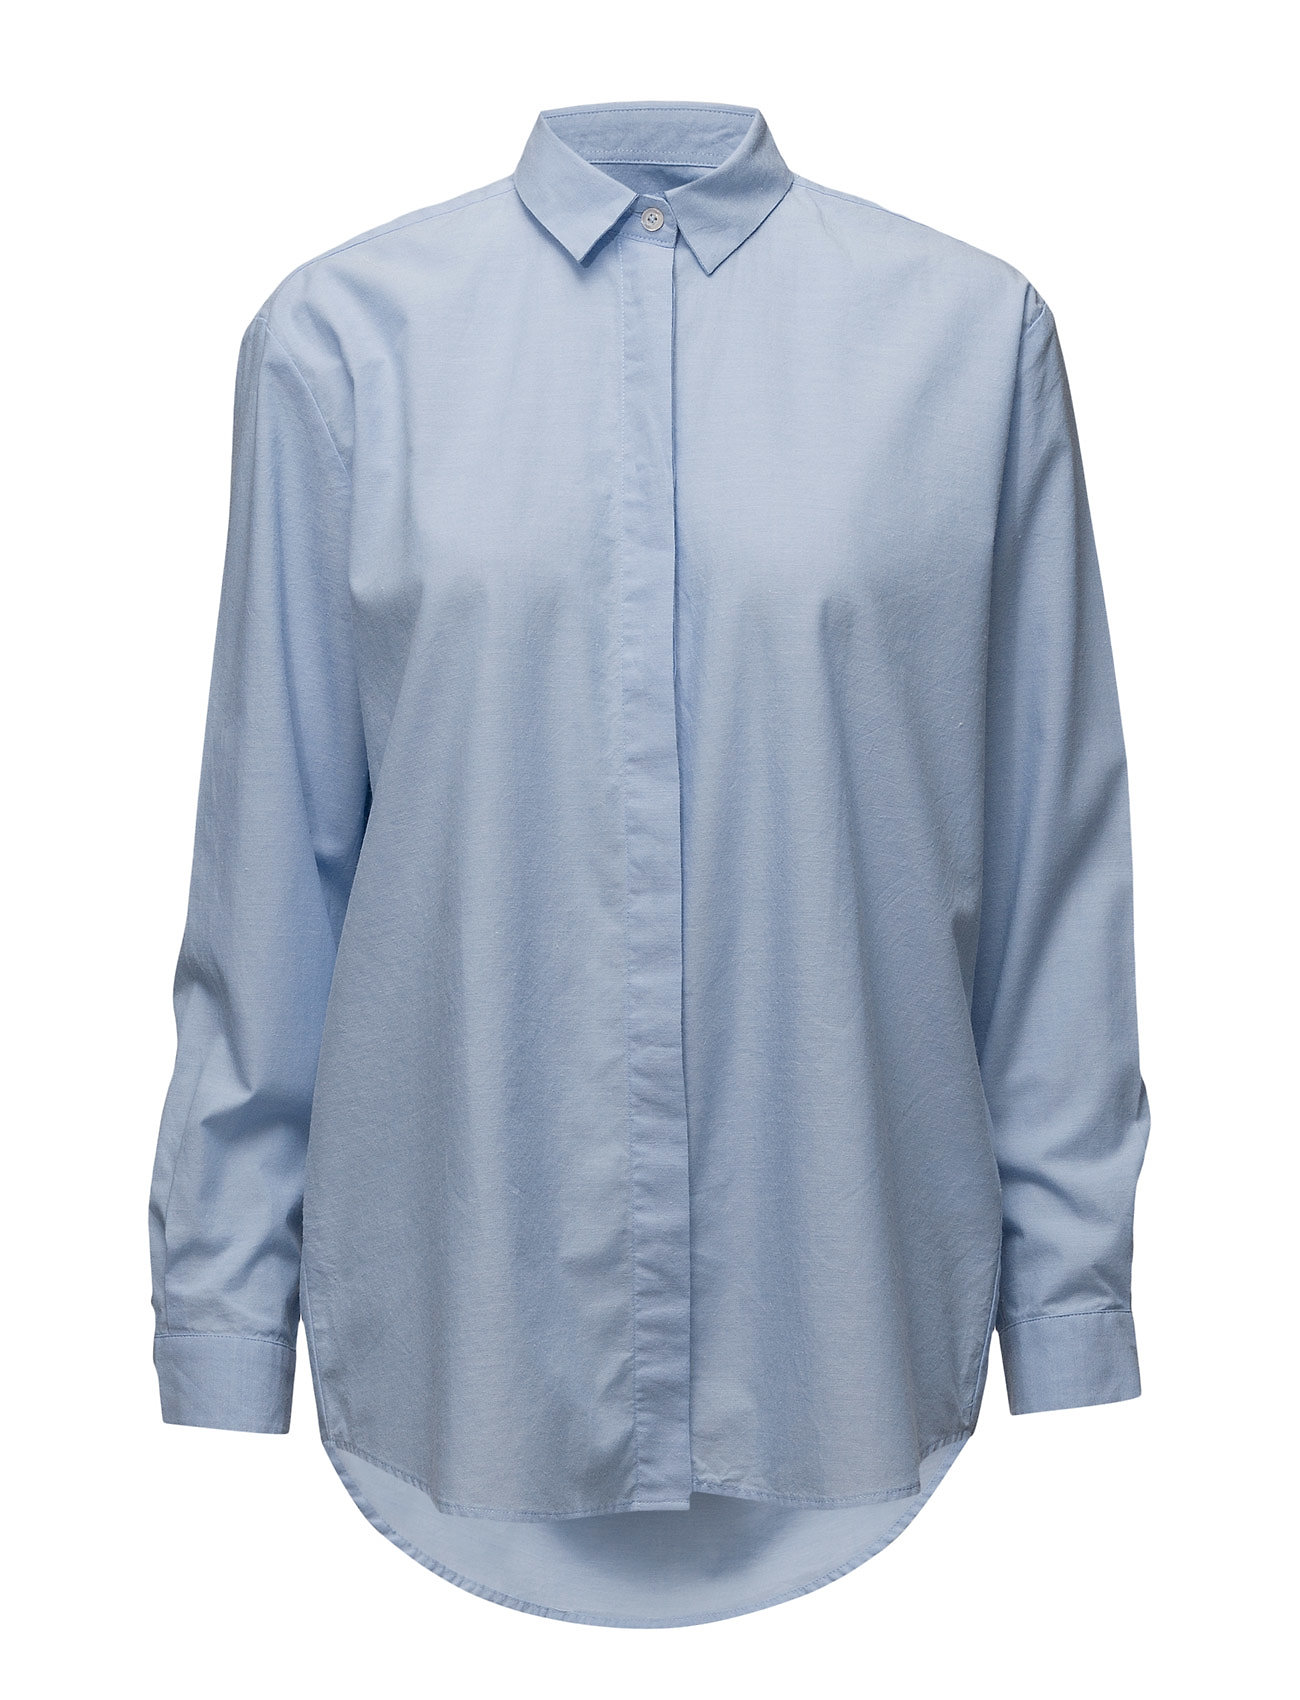 Samsøe & Samsøe Caico shirt 6135 - 6135 OXFORD BLUE